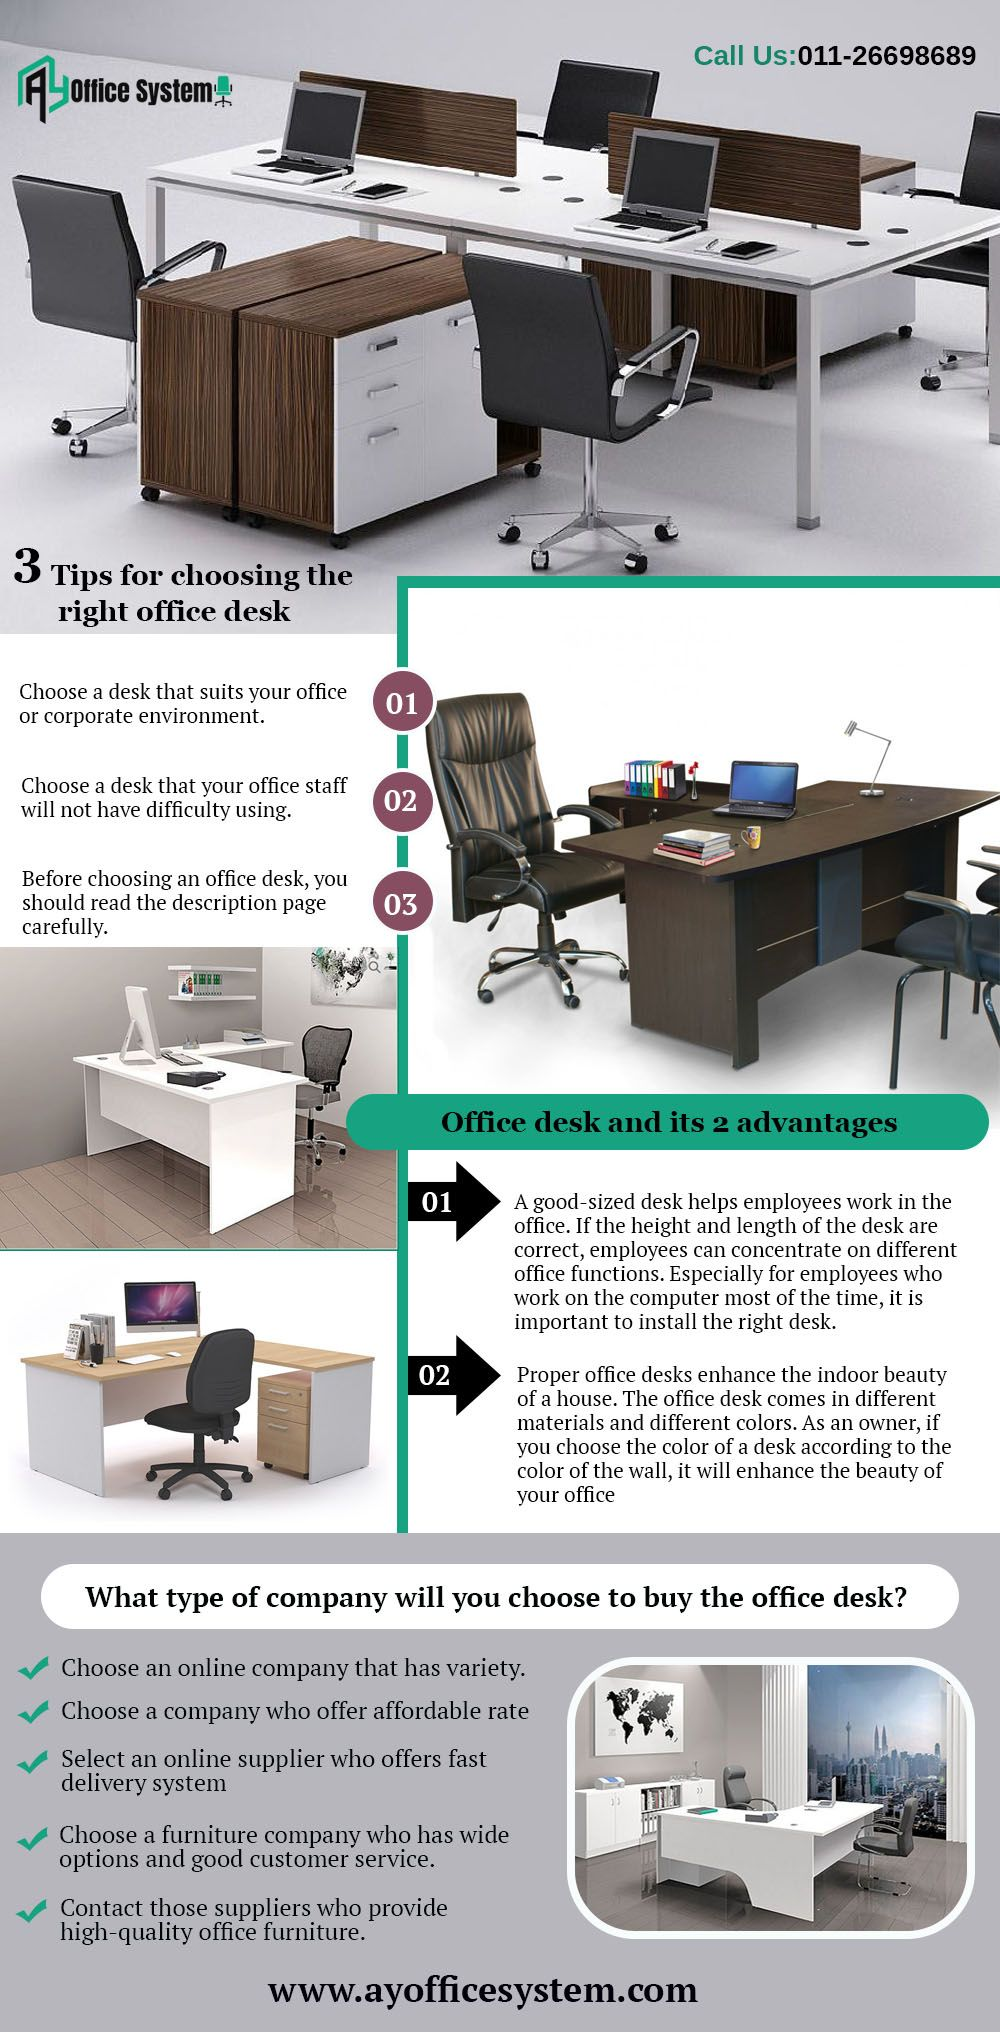 Choose A Furniture Company Who Has Wide Options And Good Customer